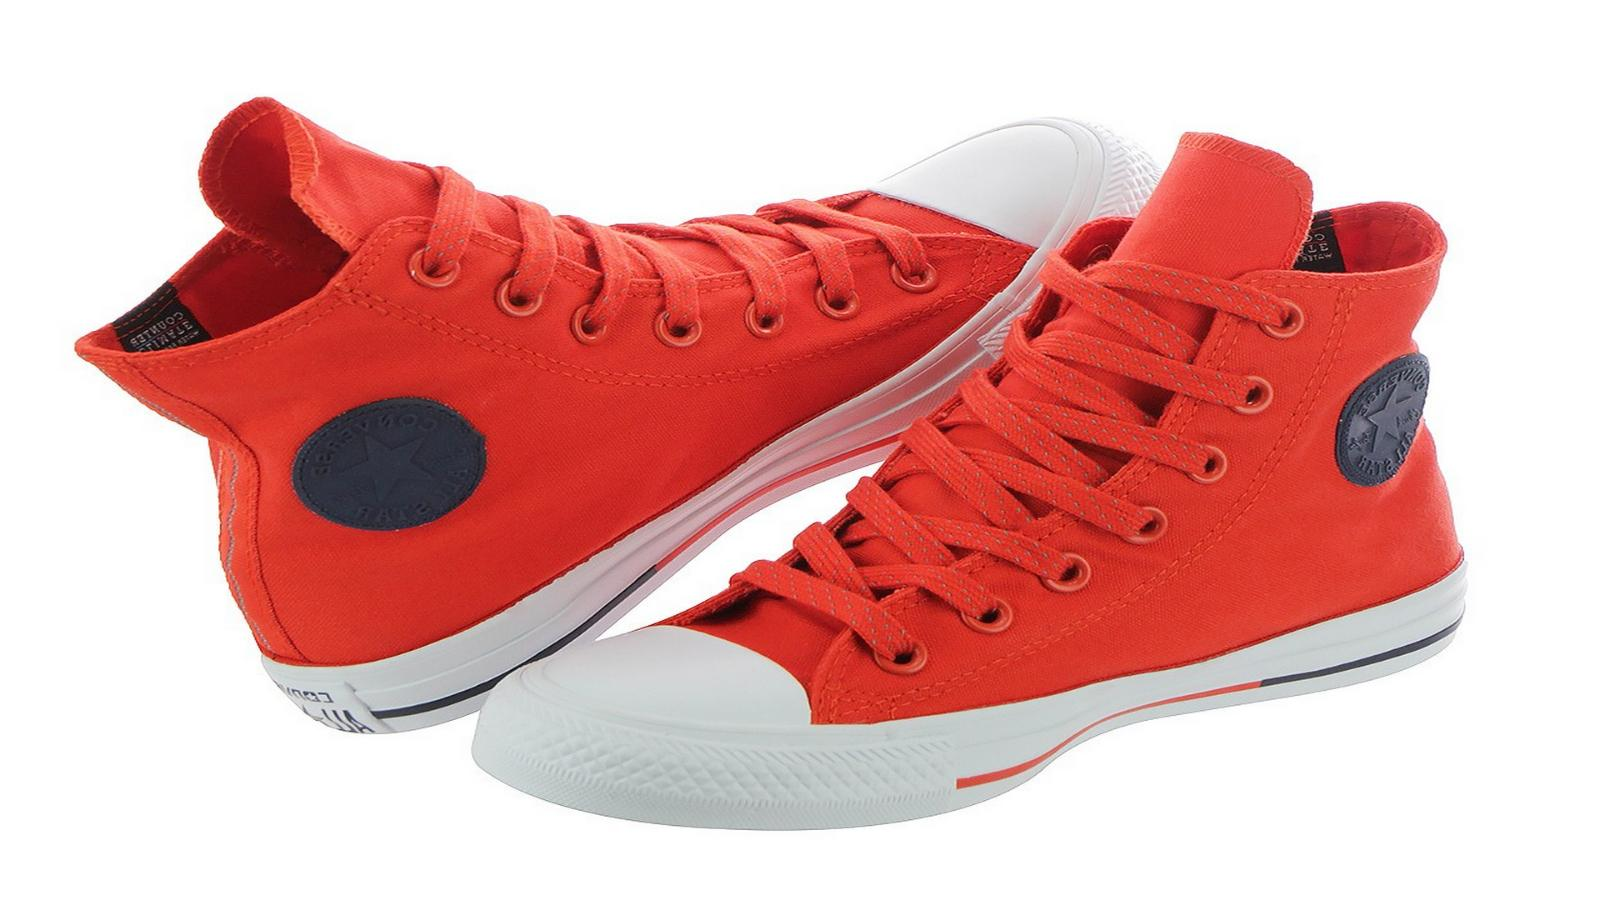 new unisex high top water resistant shoes